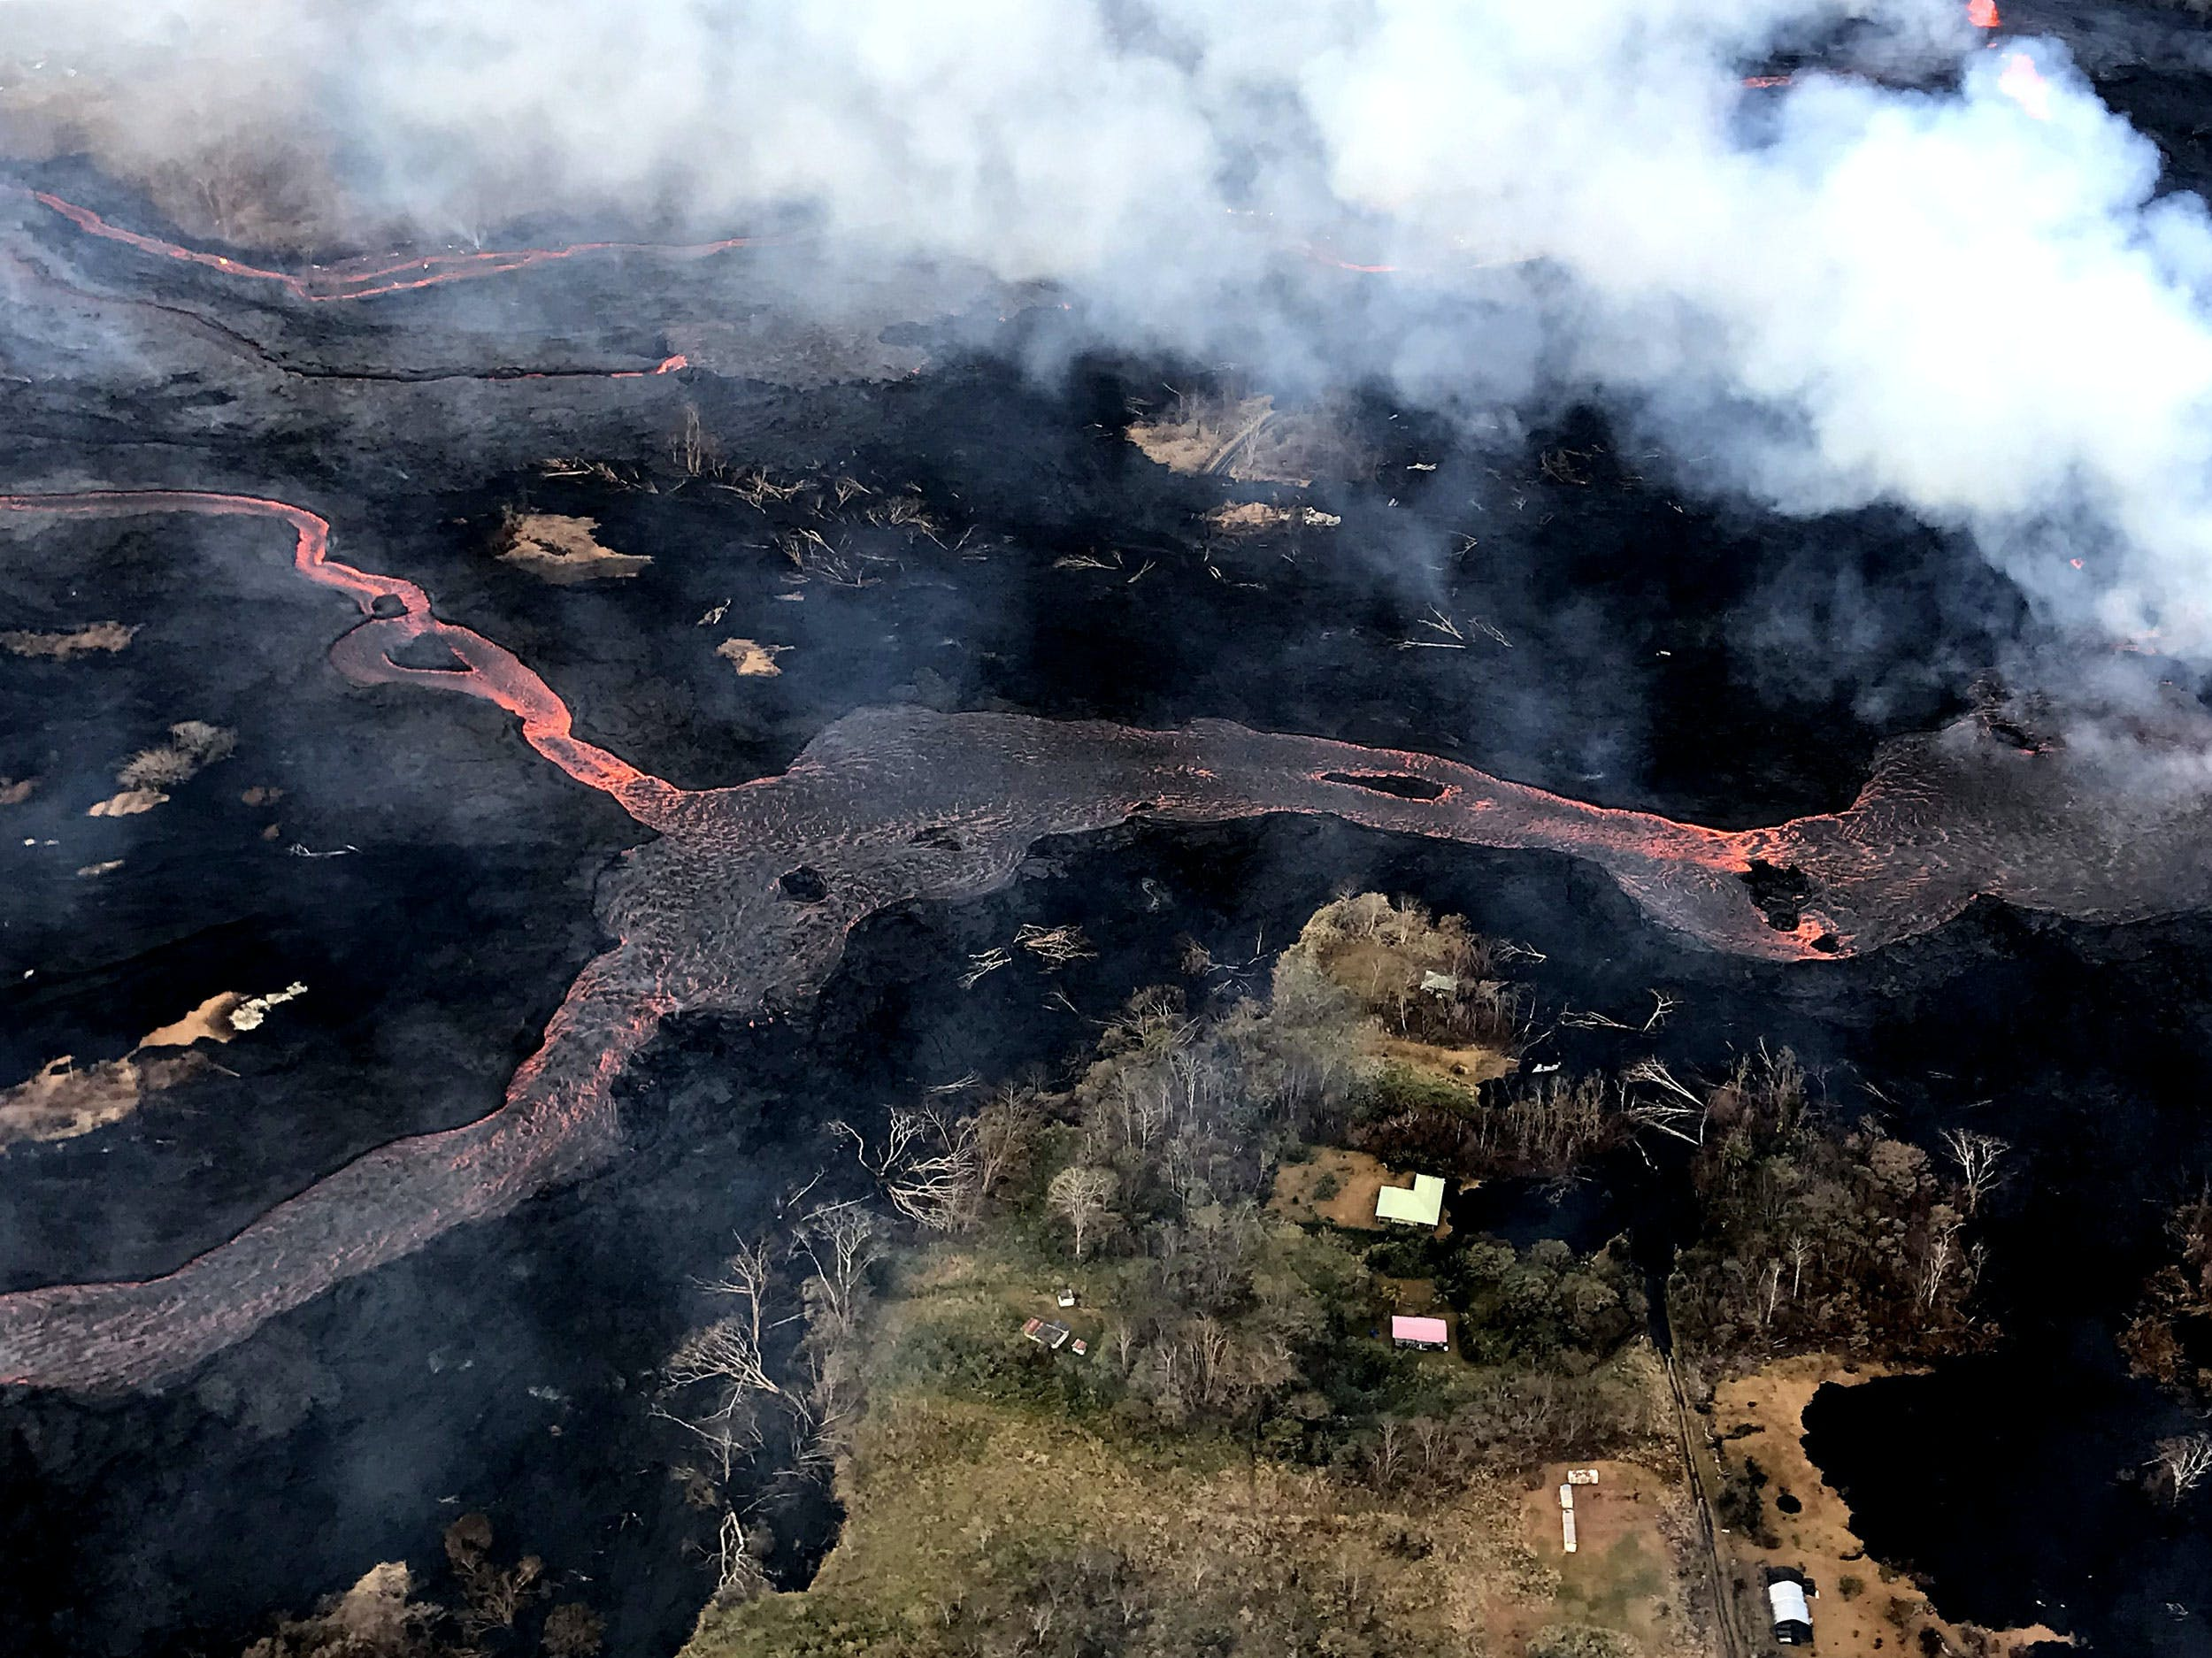 Hawaiian Cannabis Farmers Refuse to Leave Crops Amid Spreading Volcanic Lava1 California Considers Licensing Its Own Banks For The Cannabis Industry